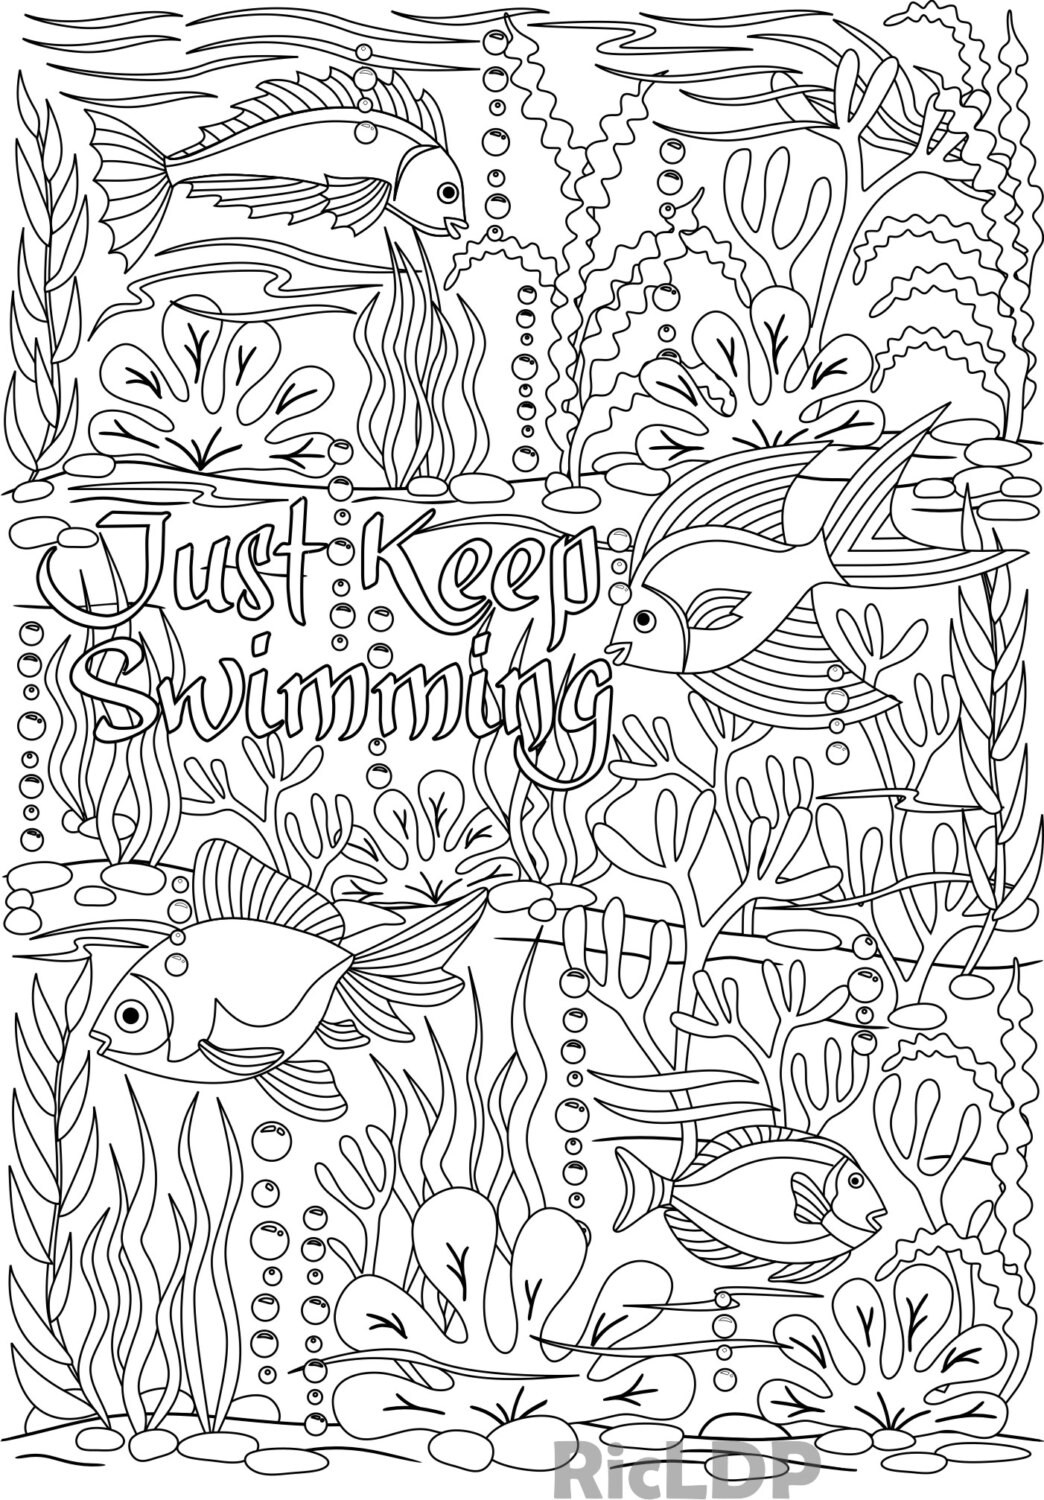 Just Keep Swimming Coloring Page Under The Sea Design